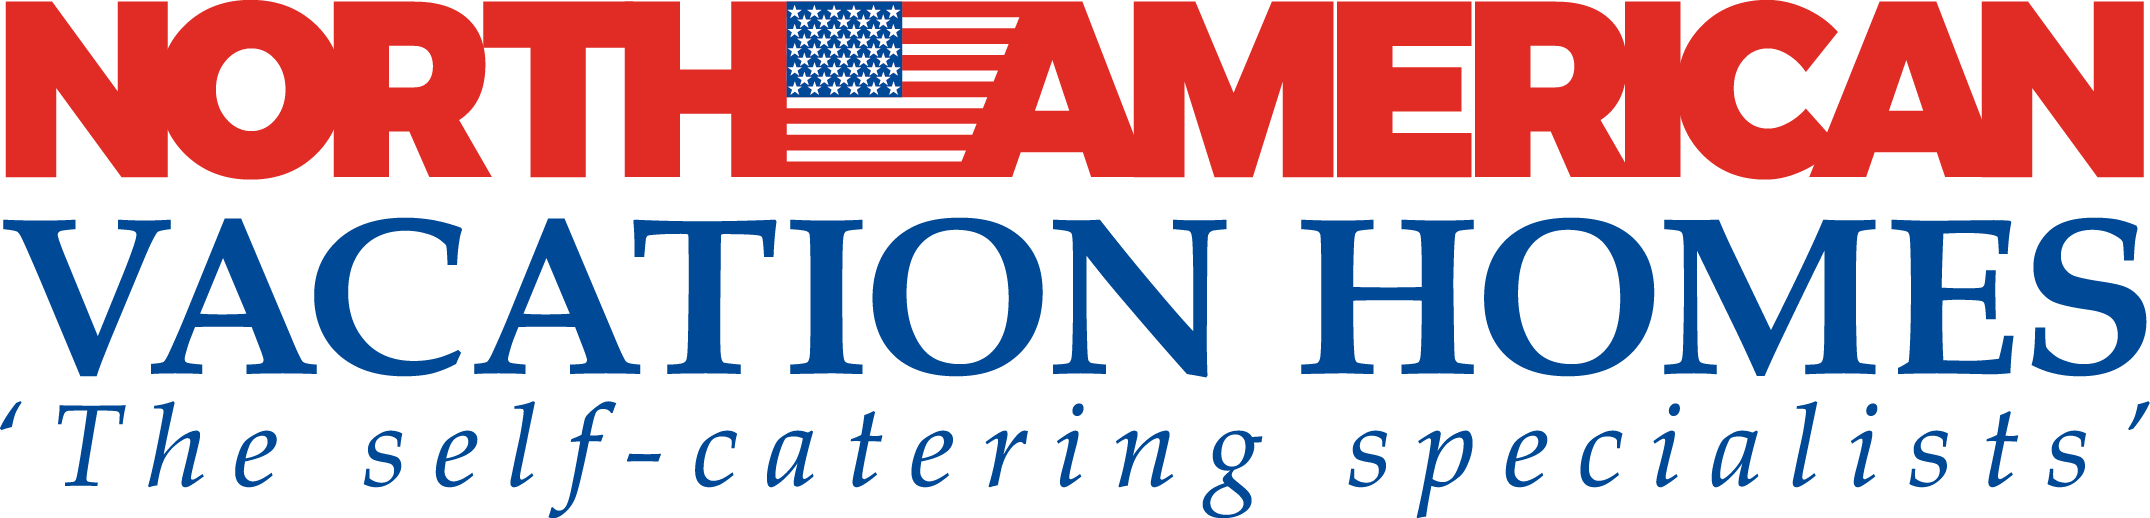 North American Vacation Homes logo